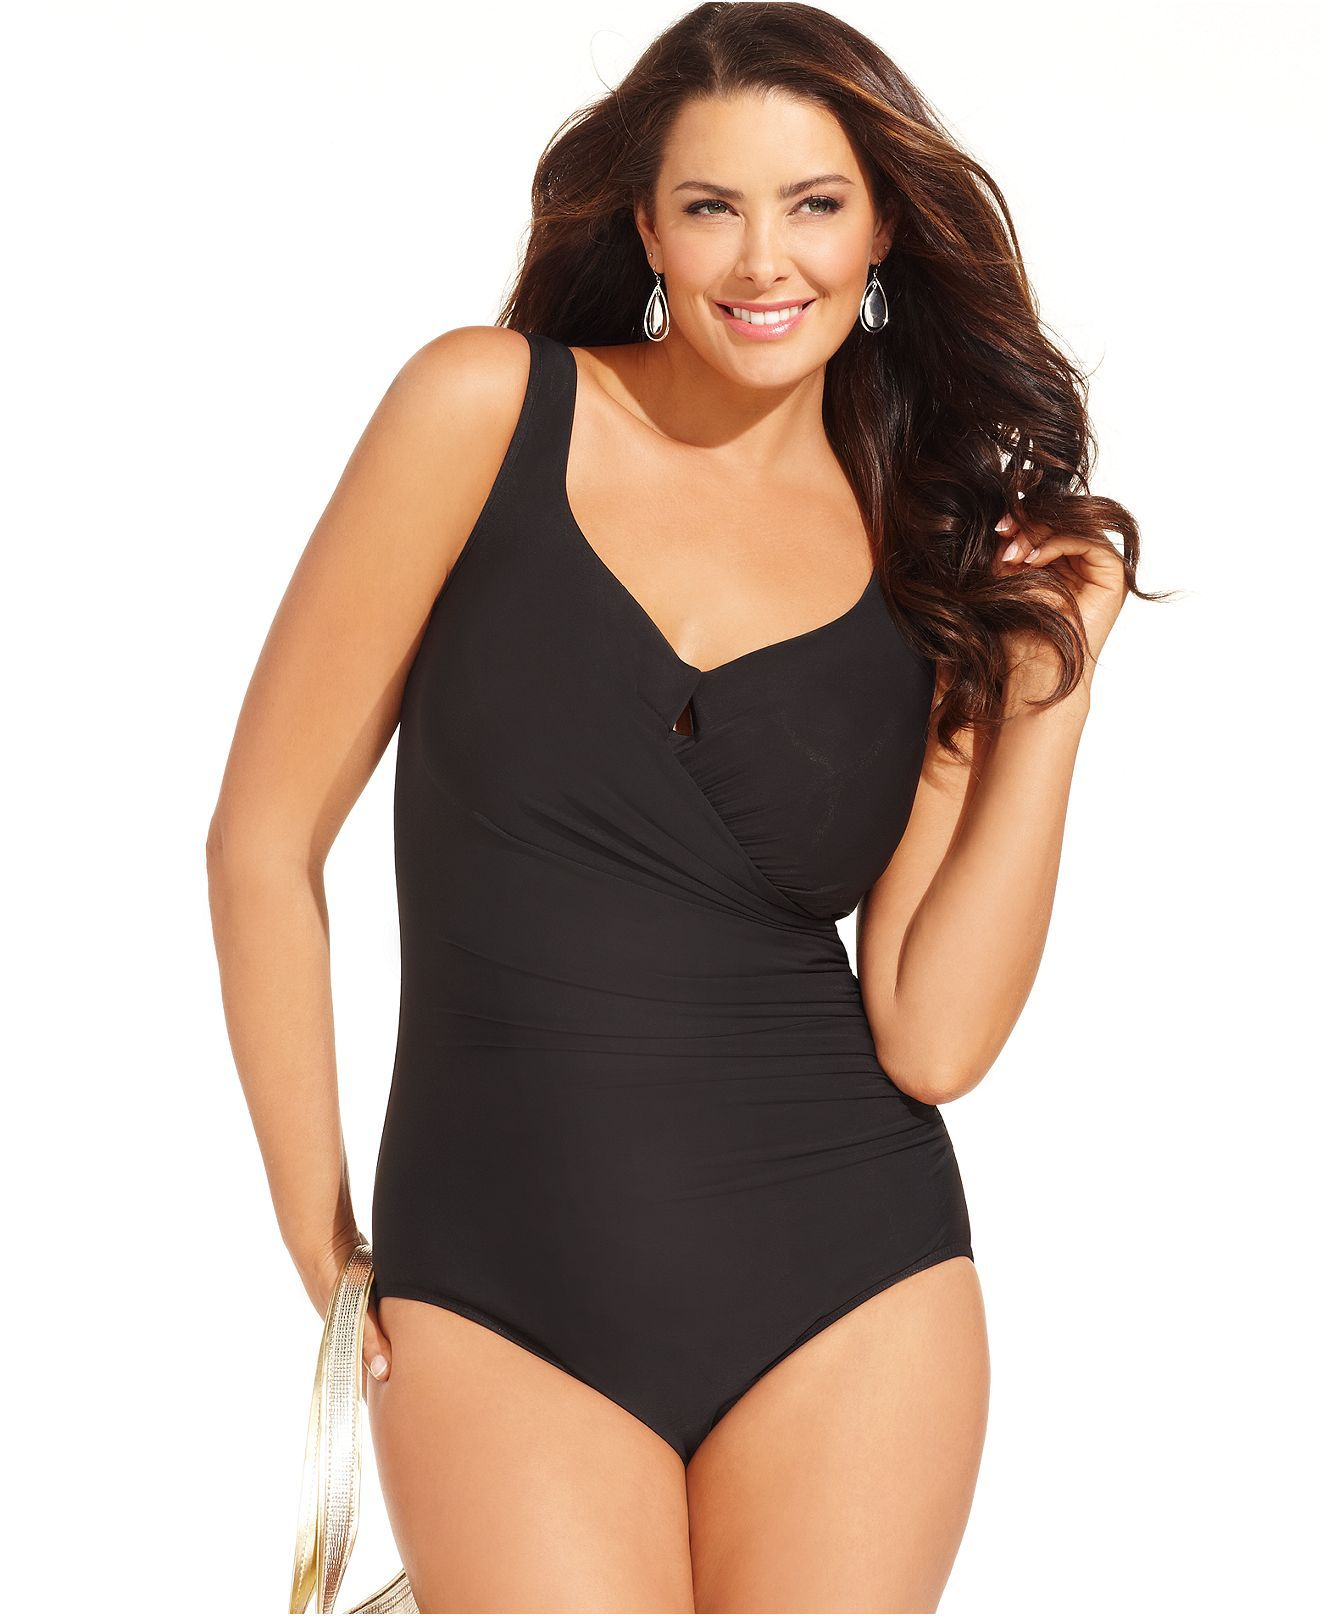 b258963ebc2dd Miraclesuit Plus Size Swimsuit, Escape One-Piece - Plus Size Swimwear - Plus  Sizes - Macy's